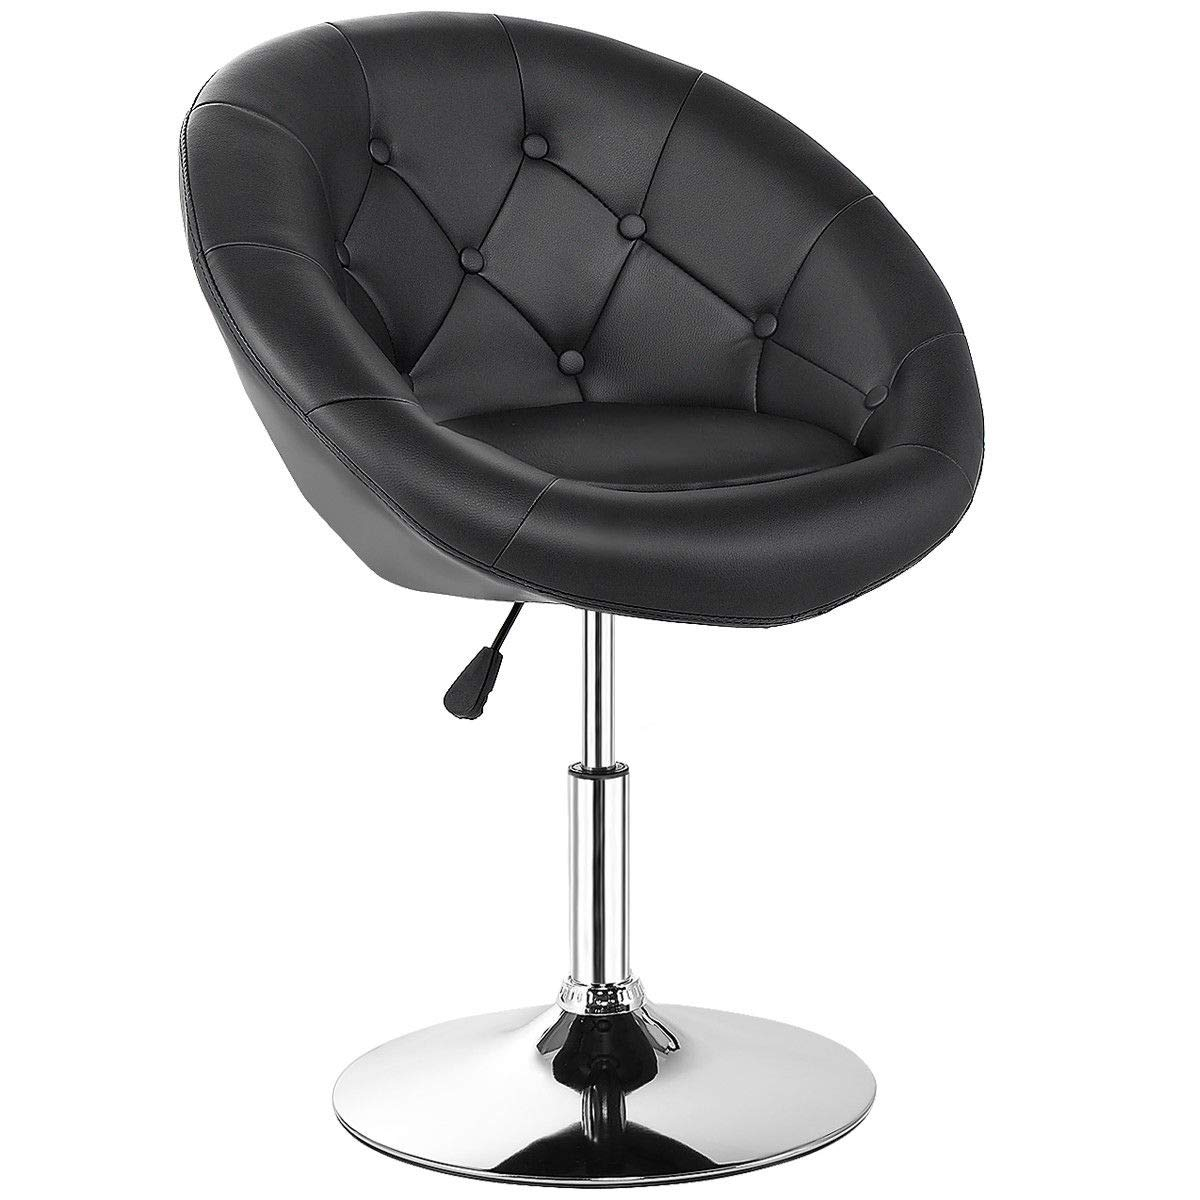 Costway Swivel Accent Chair, Contemporary Tufted Round-Back Tilt Chair with Chrome Frame, Height-Adjustable Modern for Lounge, Pub, Bar, Black by COSTWAY